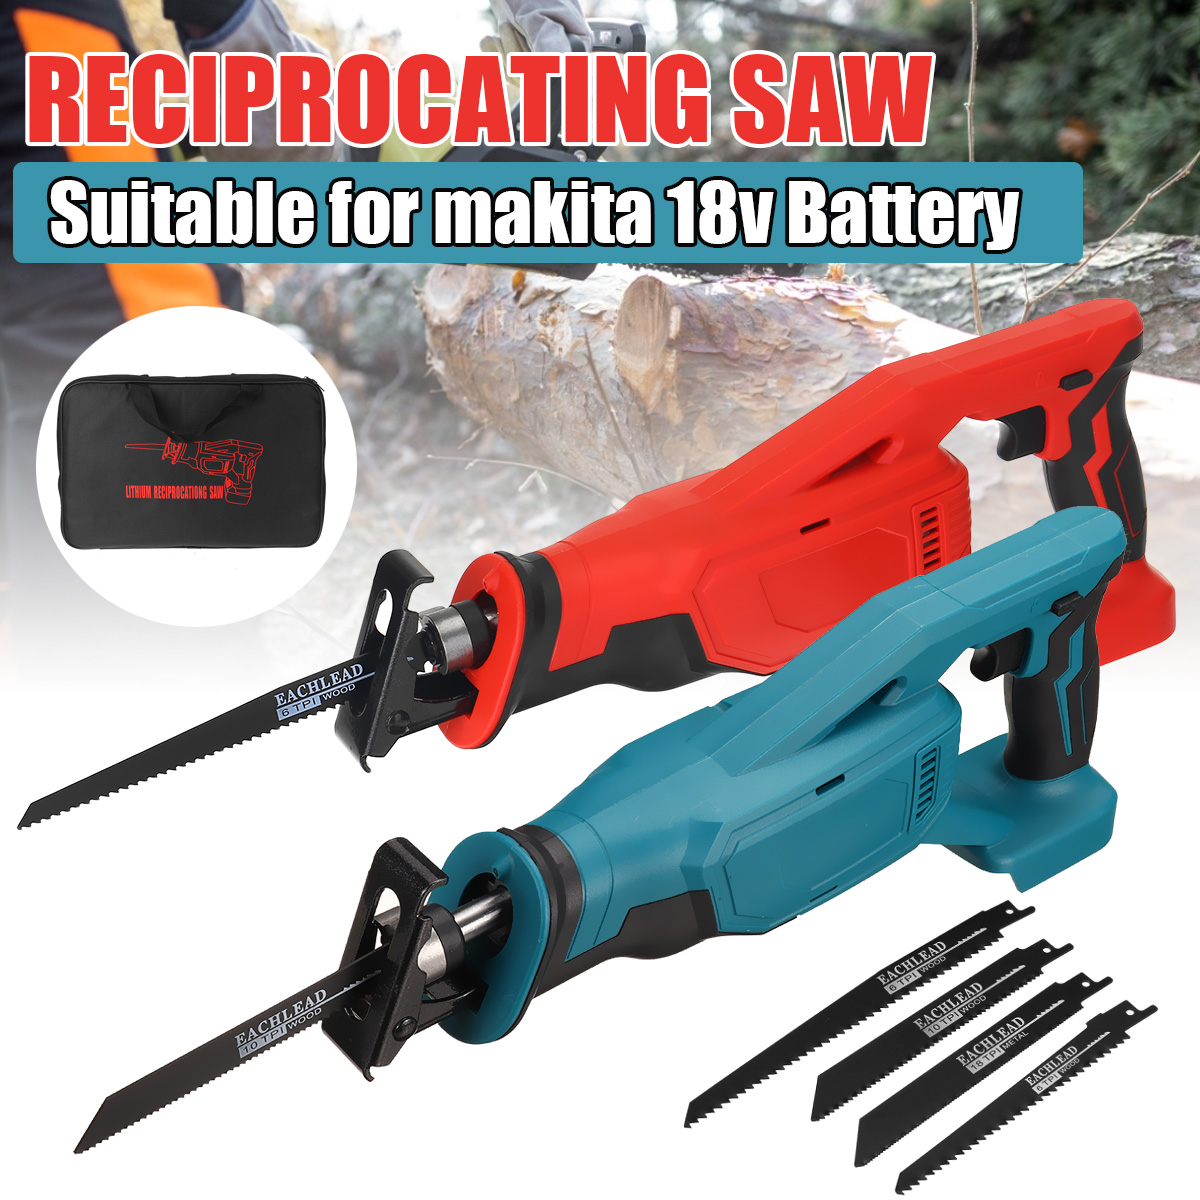 Electric Saw Cordless Reciprocating Saw Woodworking Cutting DIY Power Handheld Saw Tool with 4 Saw Blades for 18V Makita Battery